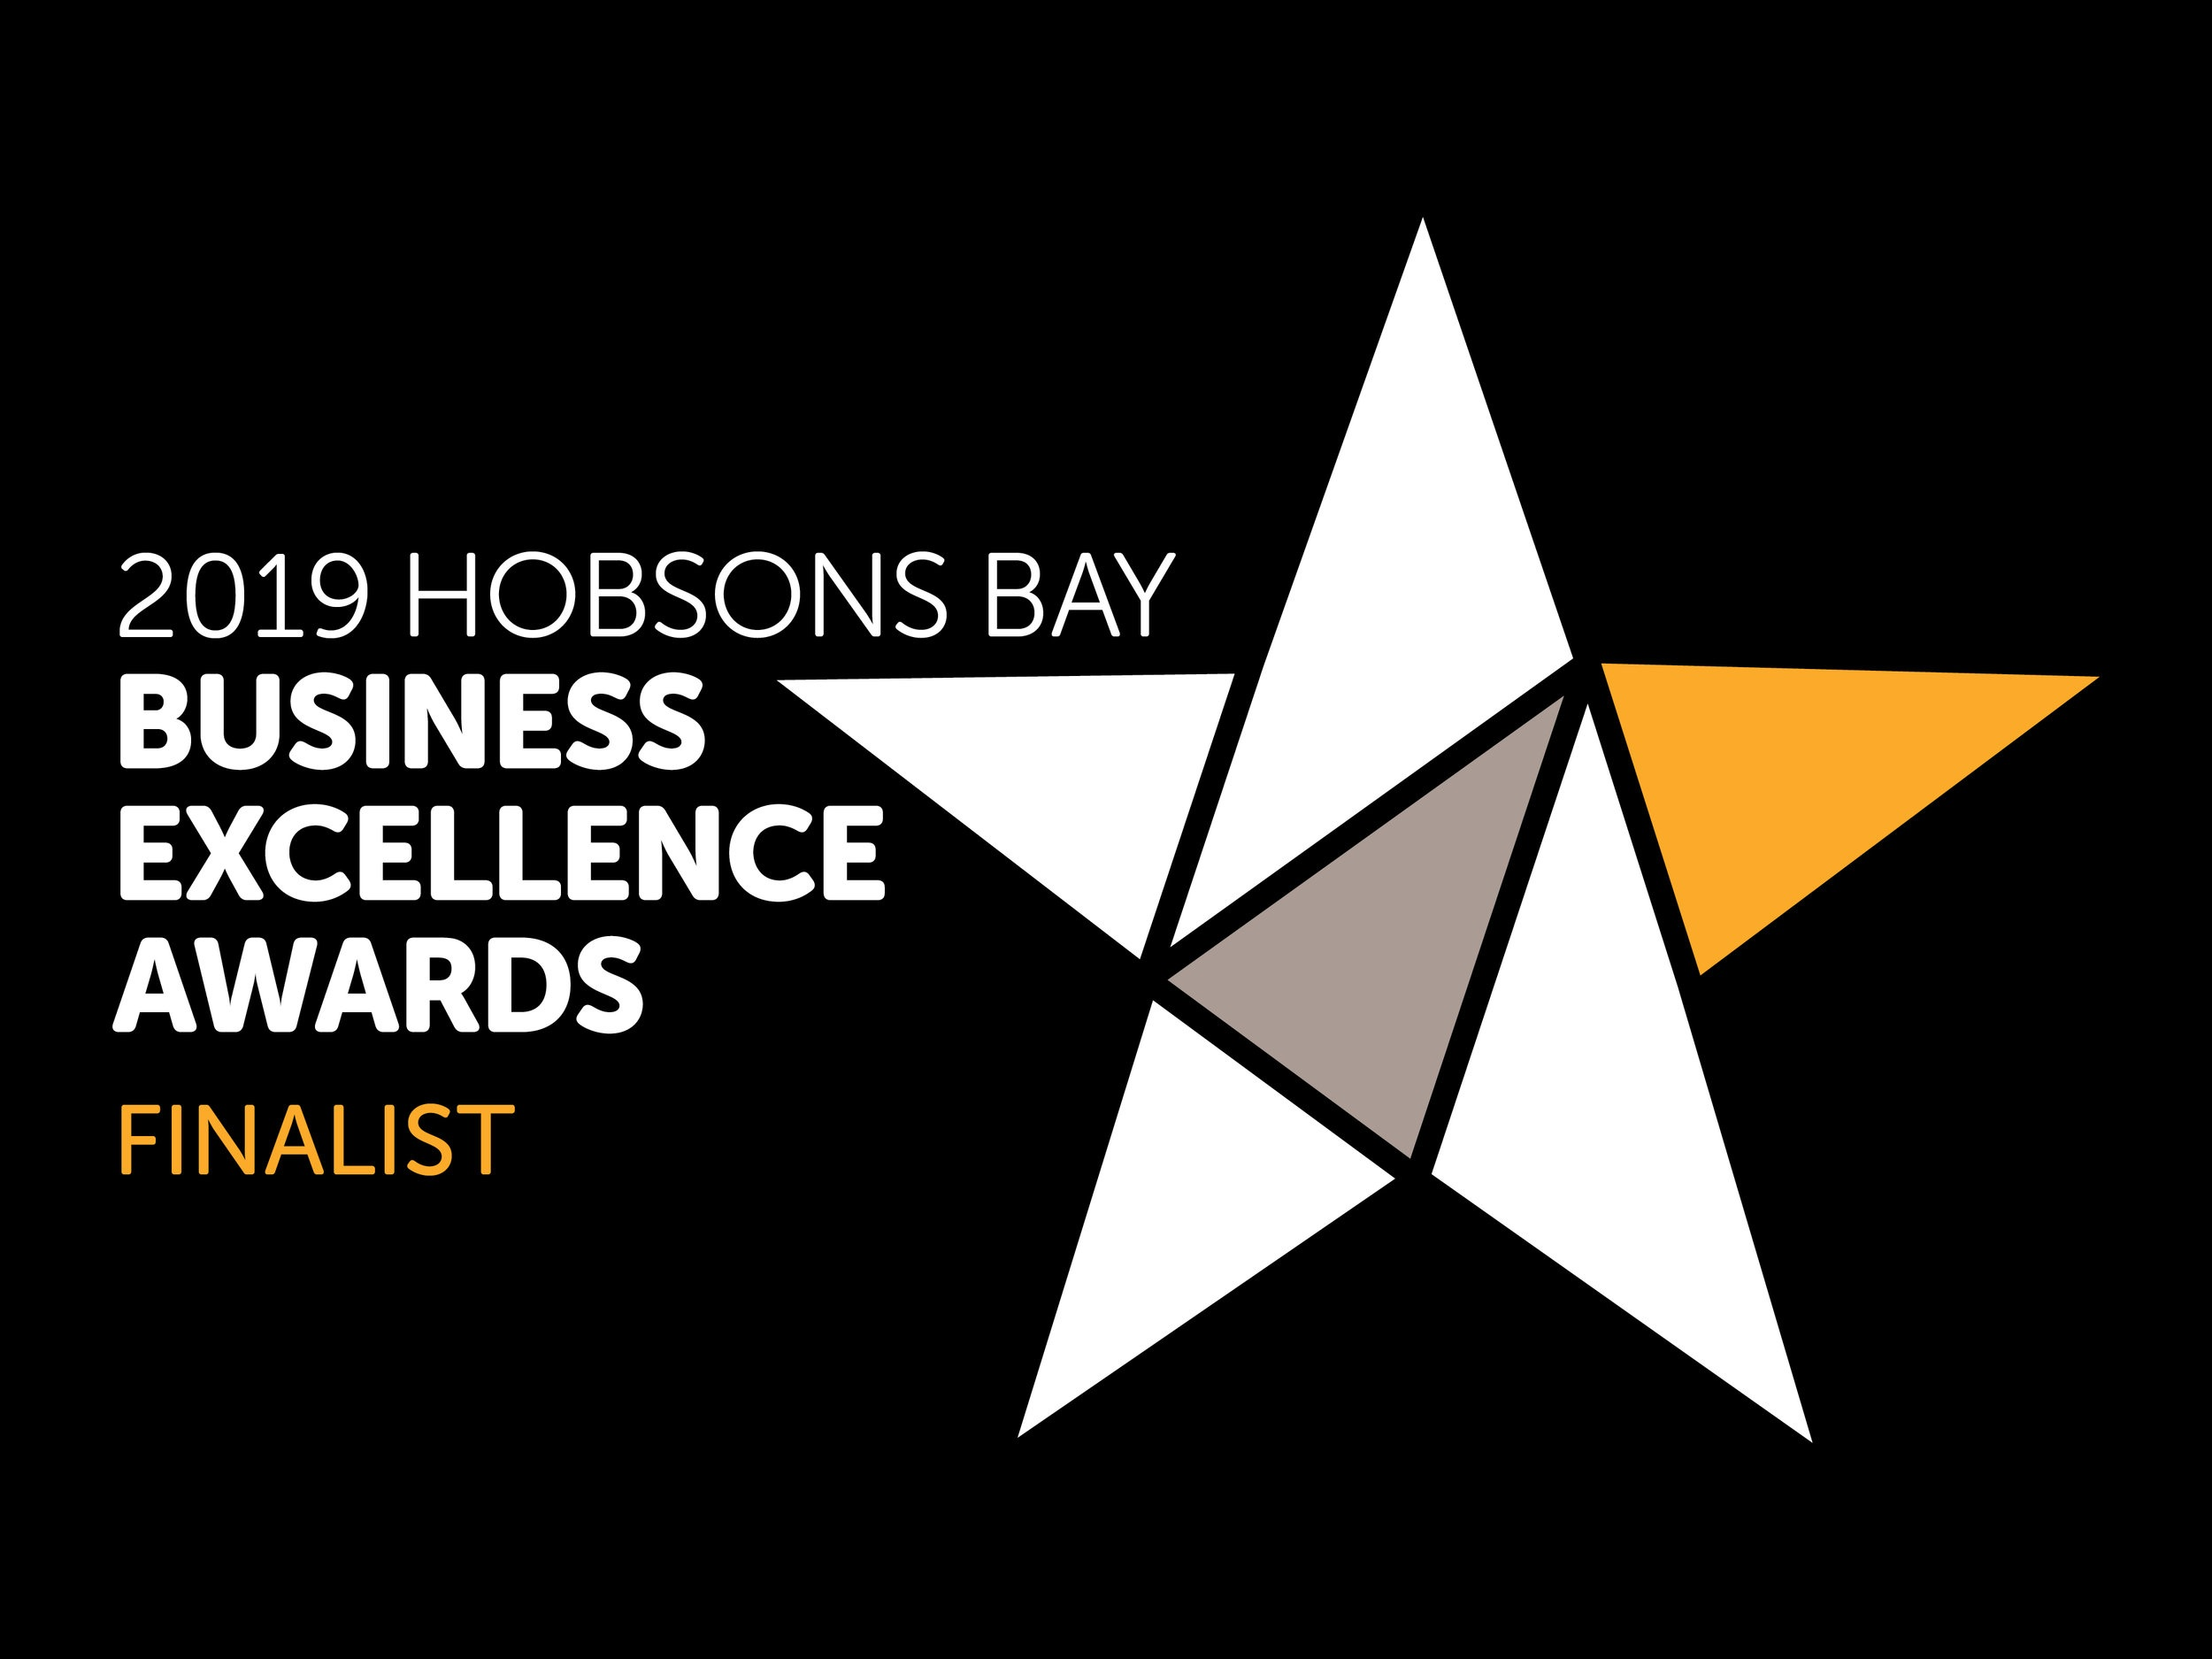 Business Excellence Awards Finalist 2019